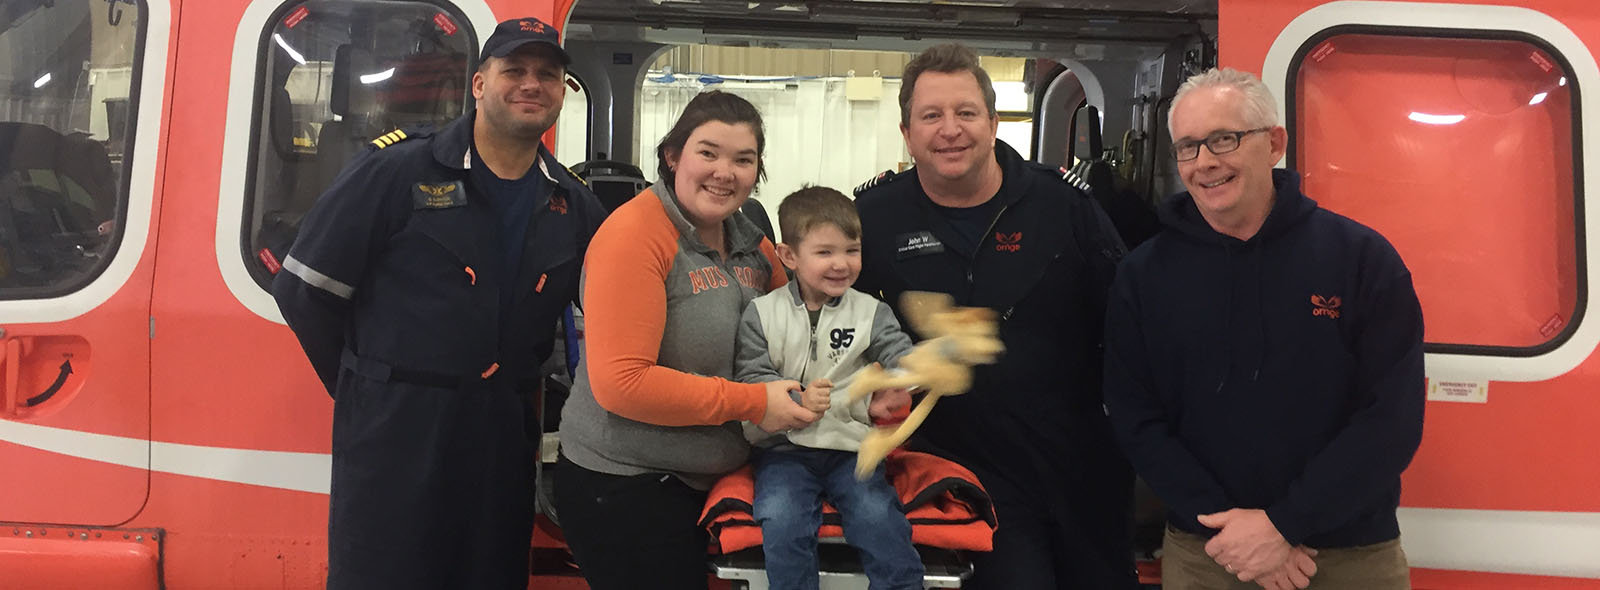 Christine Normore and son Joseph reconnect with Ornge crew